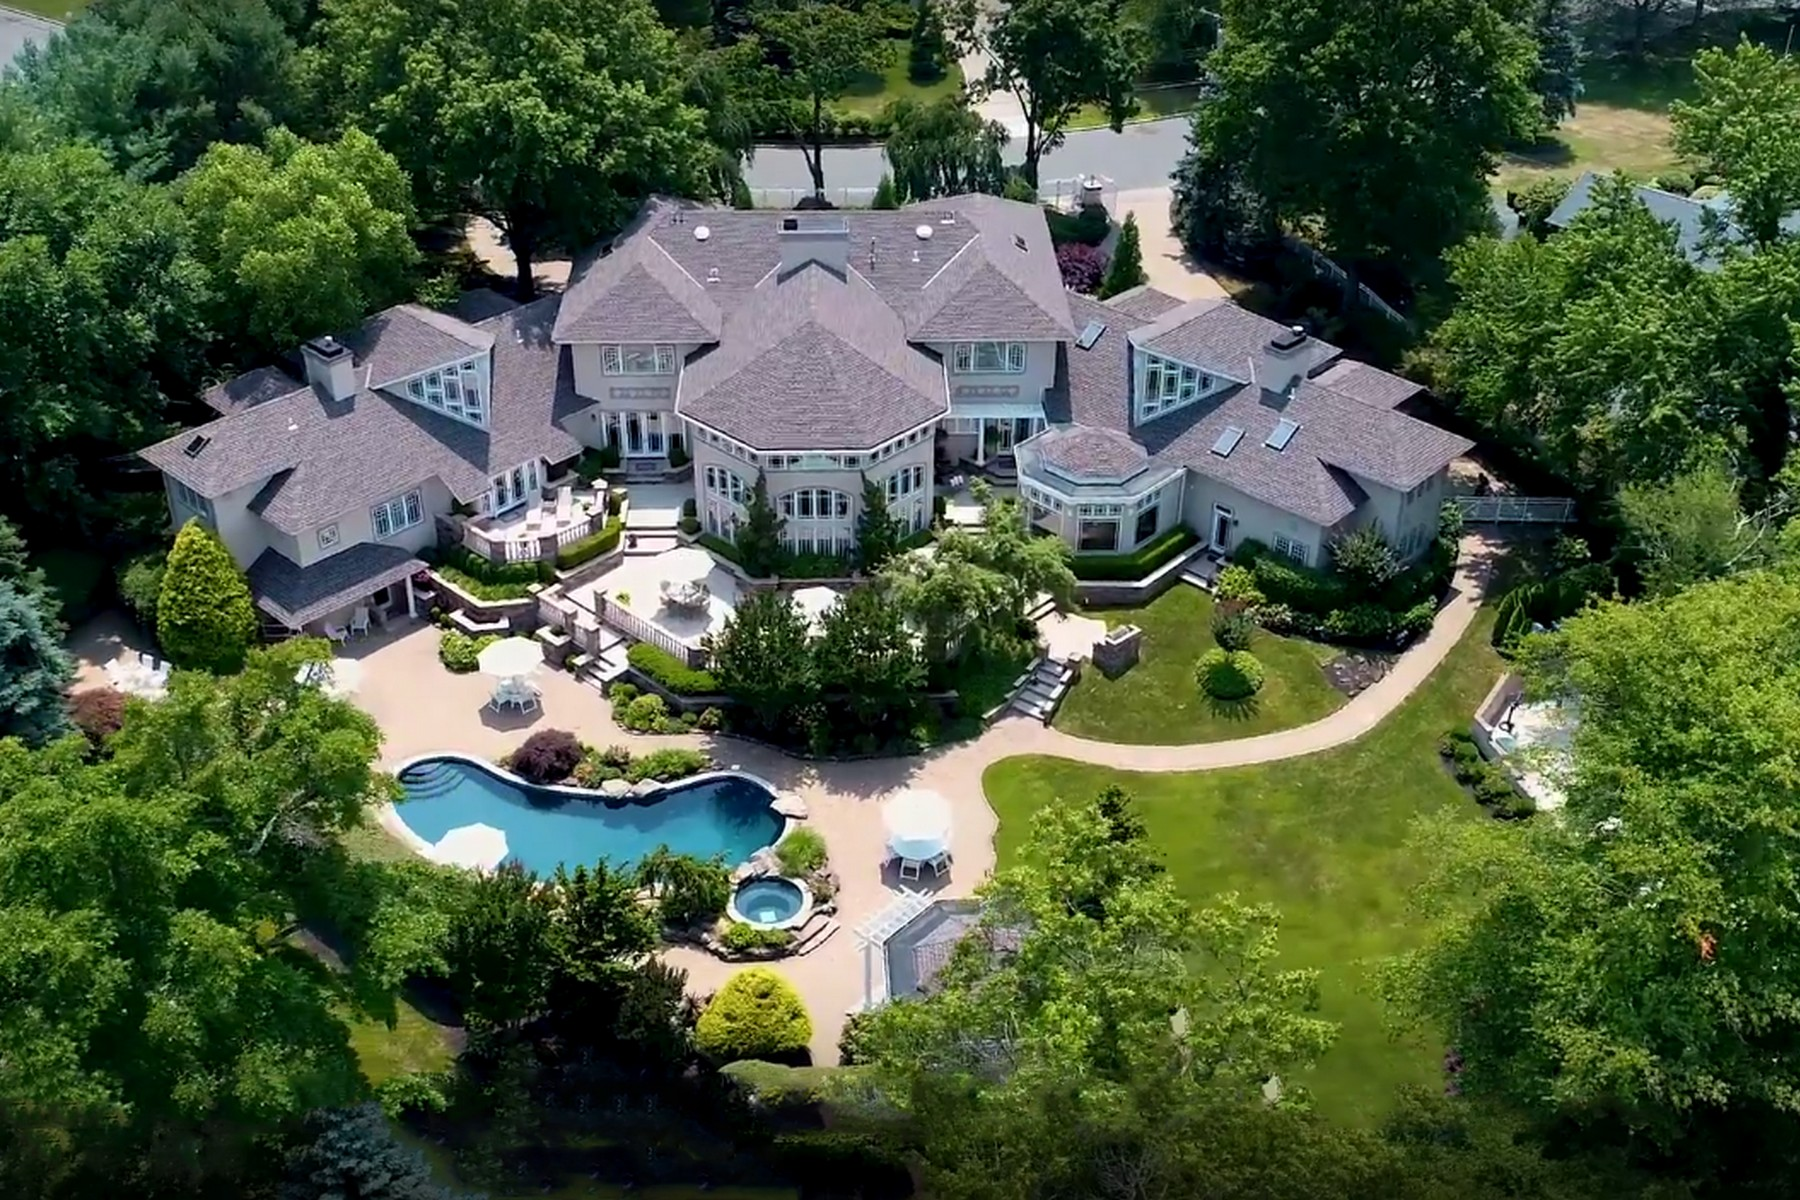 House for Sale at Resort Waterfront 11 Pine Drive Little Silver, New Jersey 07739 United States